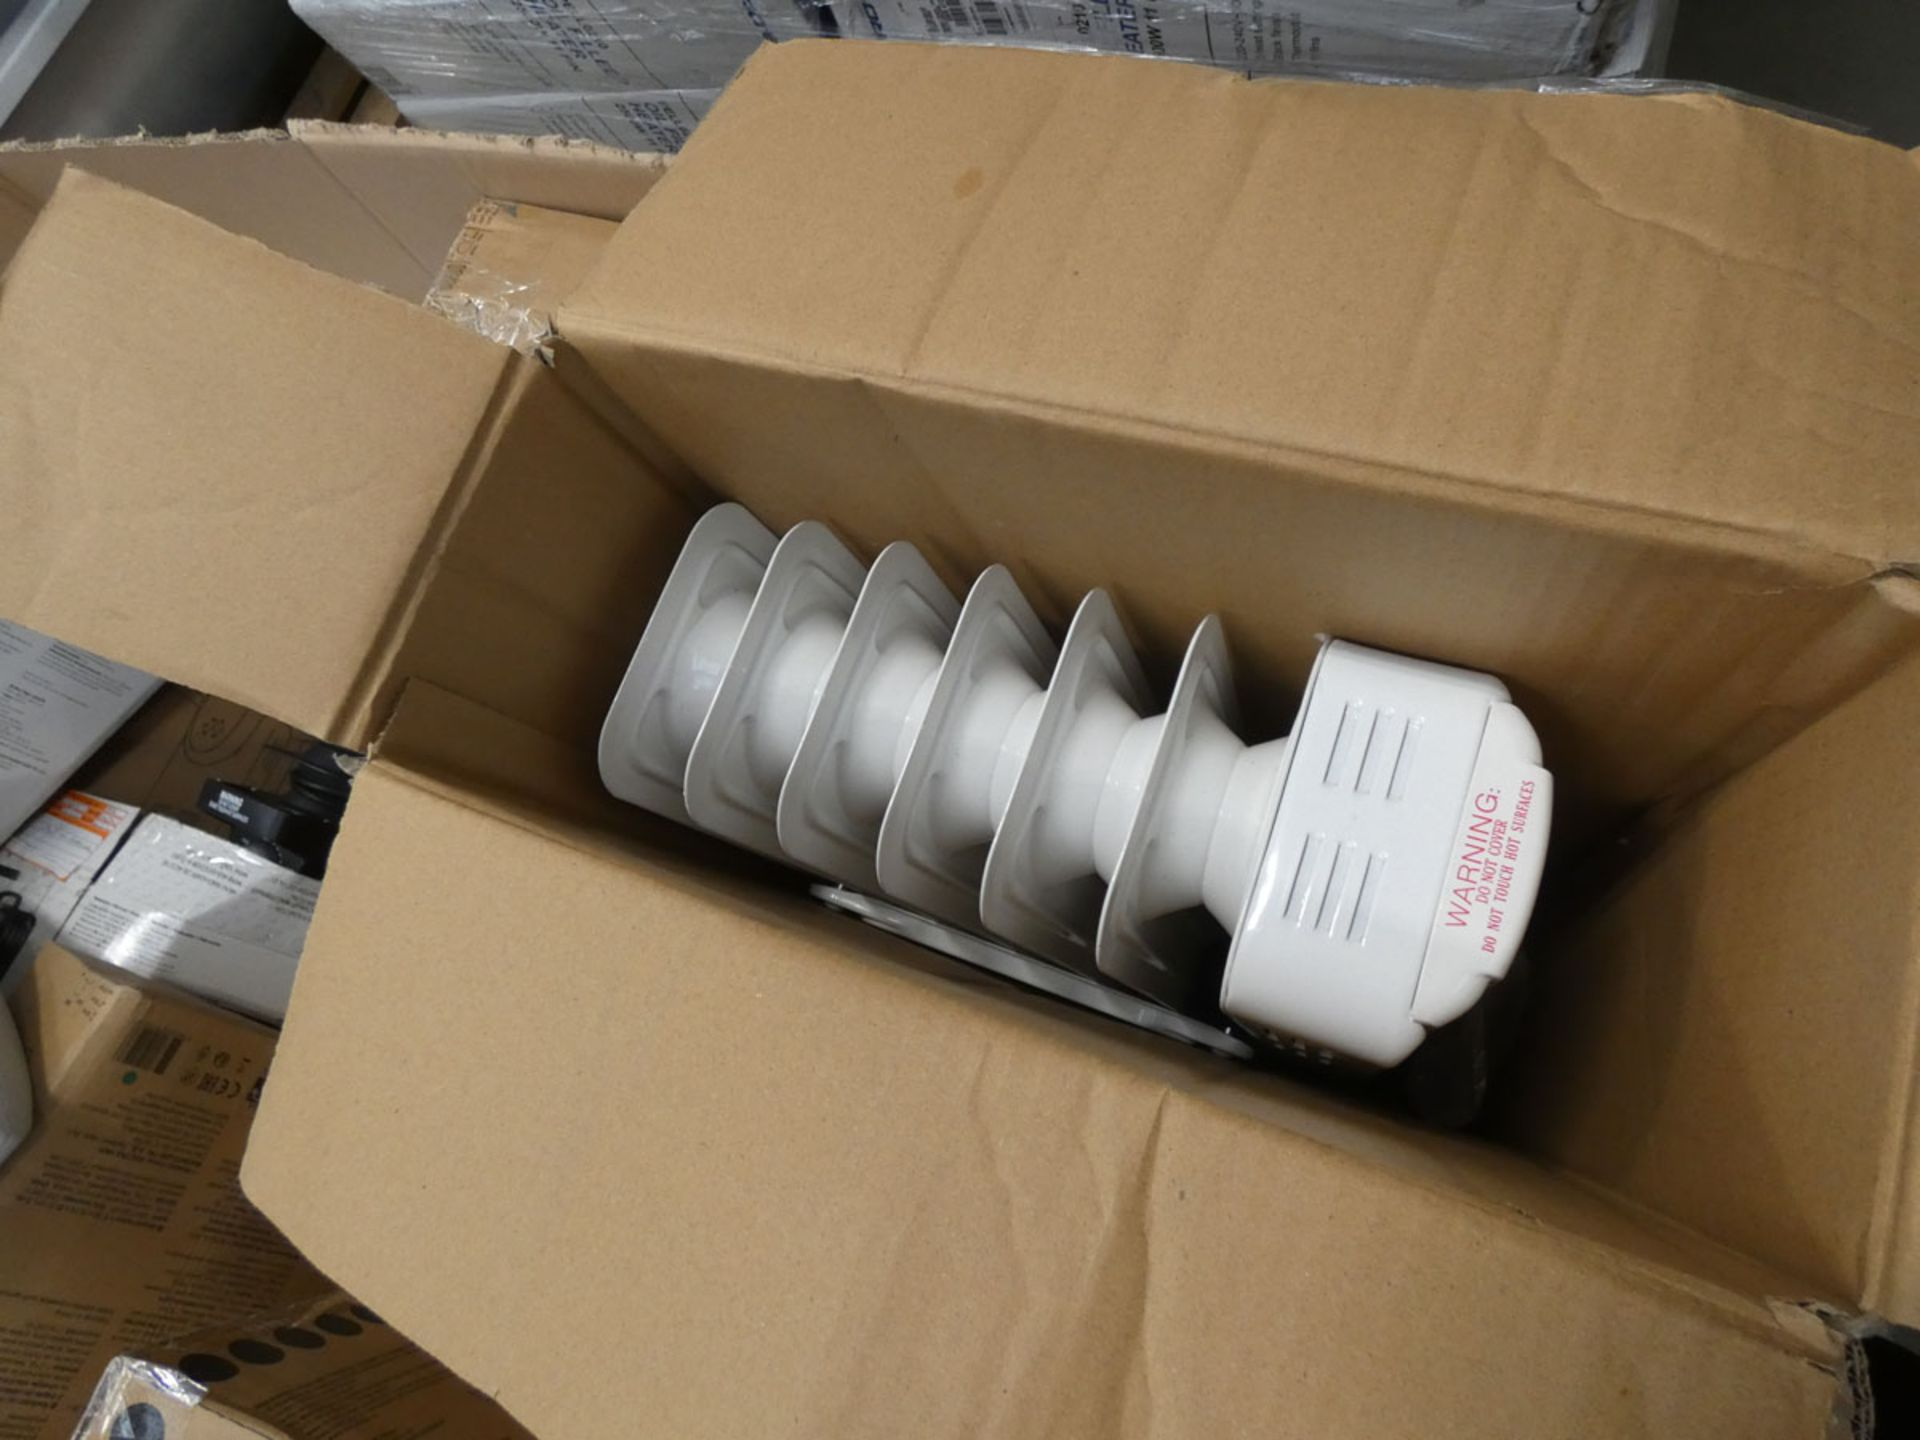 Large pallet box containing approx. 10-12 oil filled radiators and electric heater - Image 2 of 3